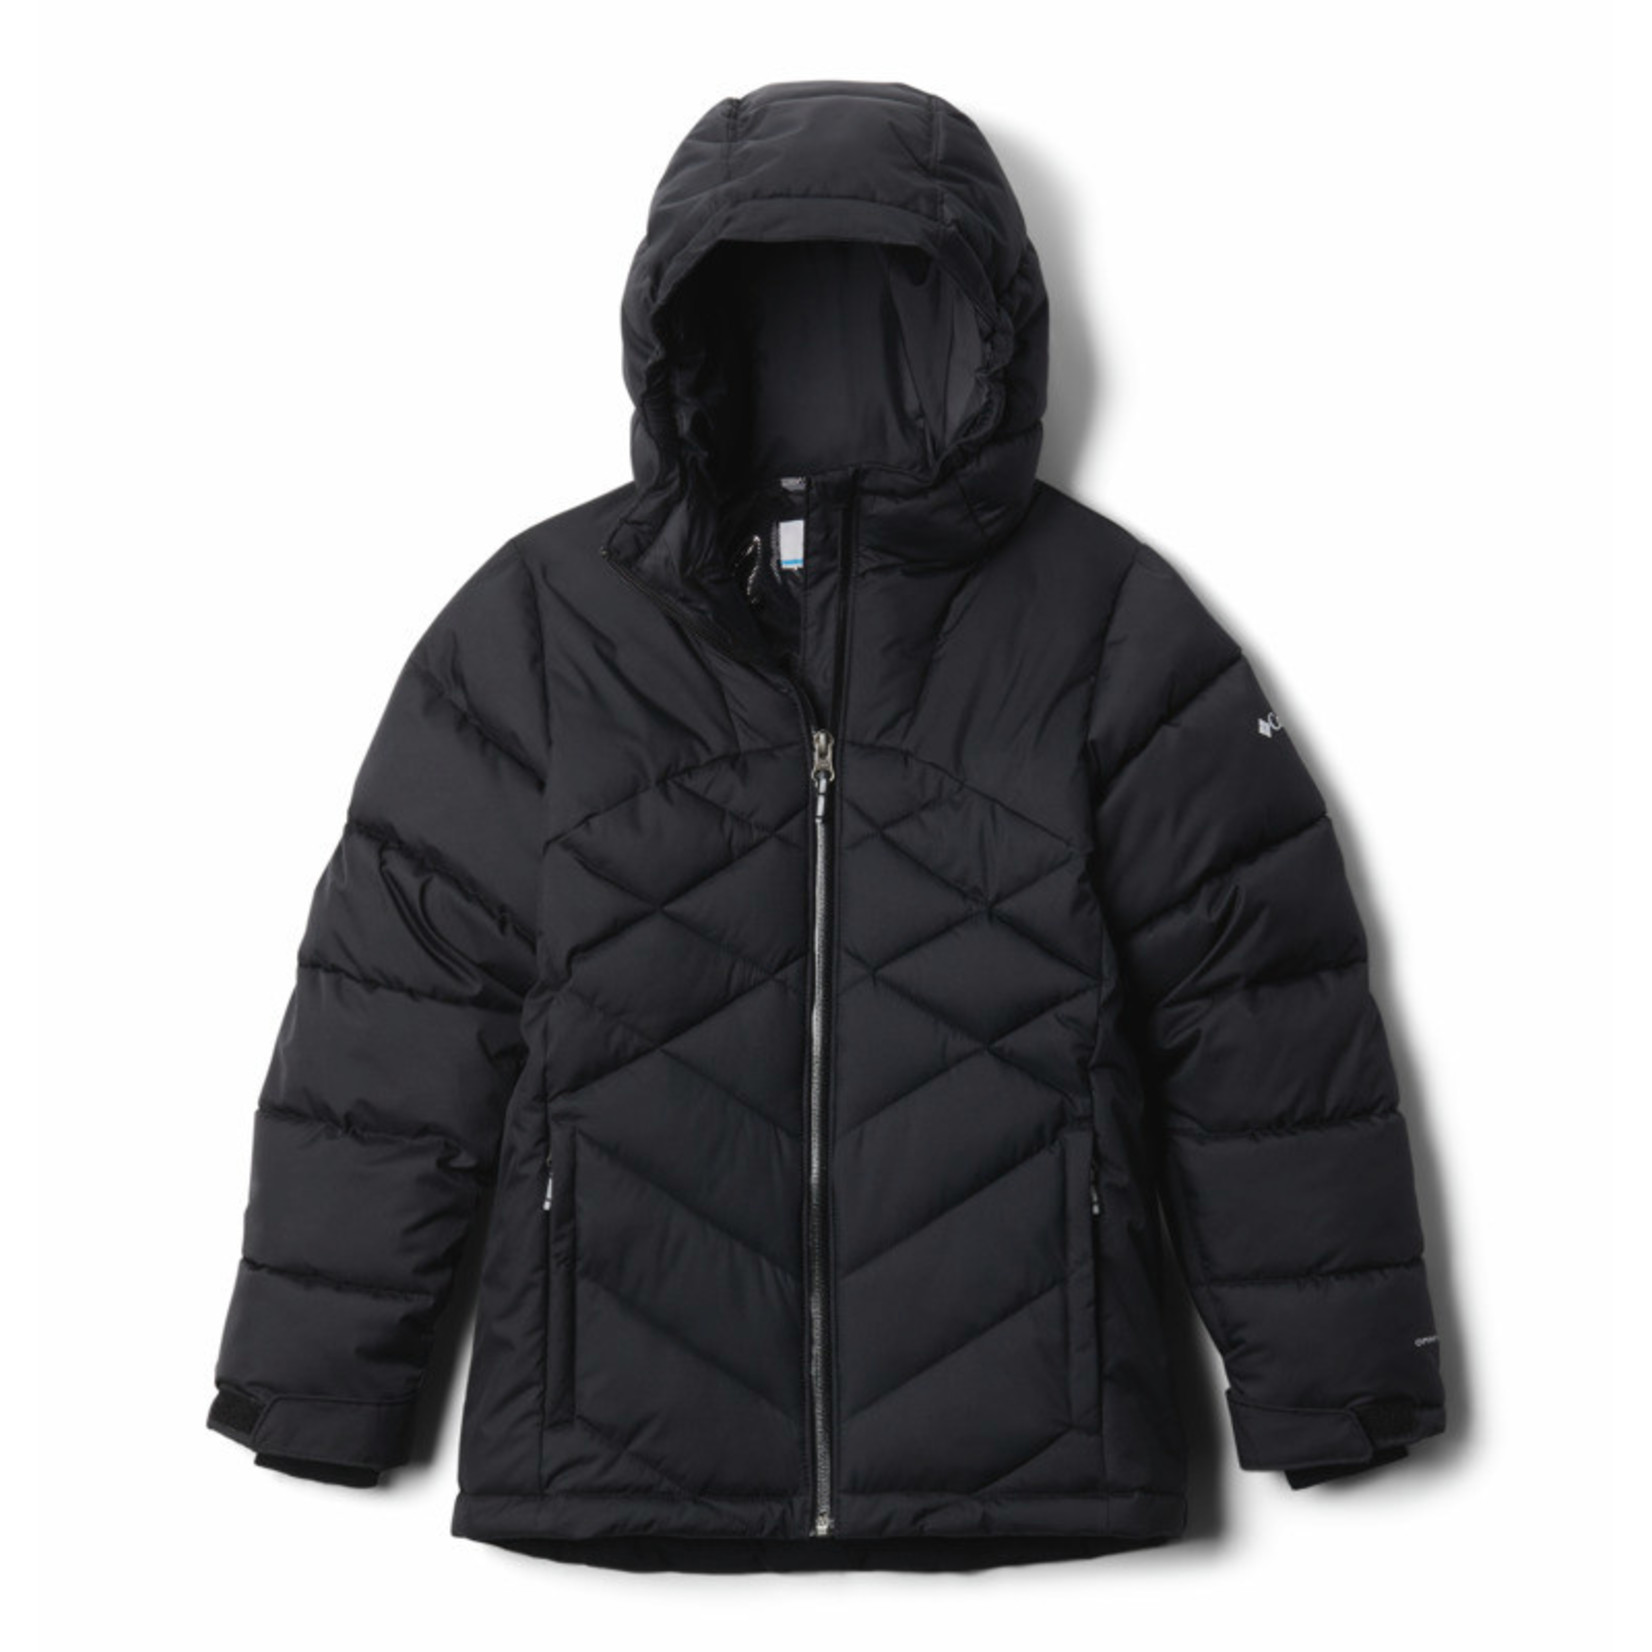 Columbia Columbia Winter Jacket, Winter Powder Quilted, Girls